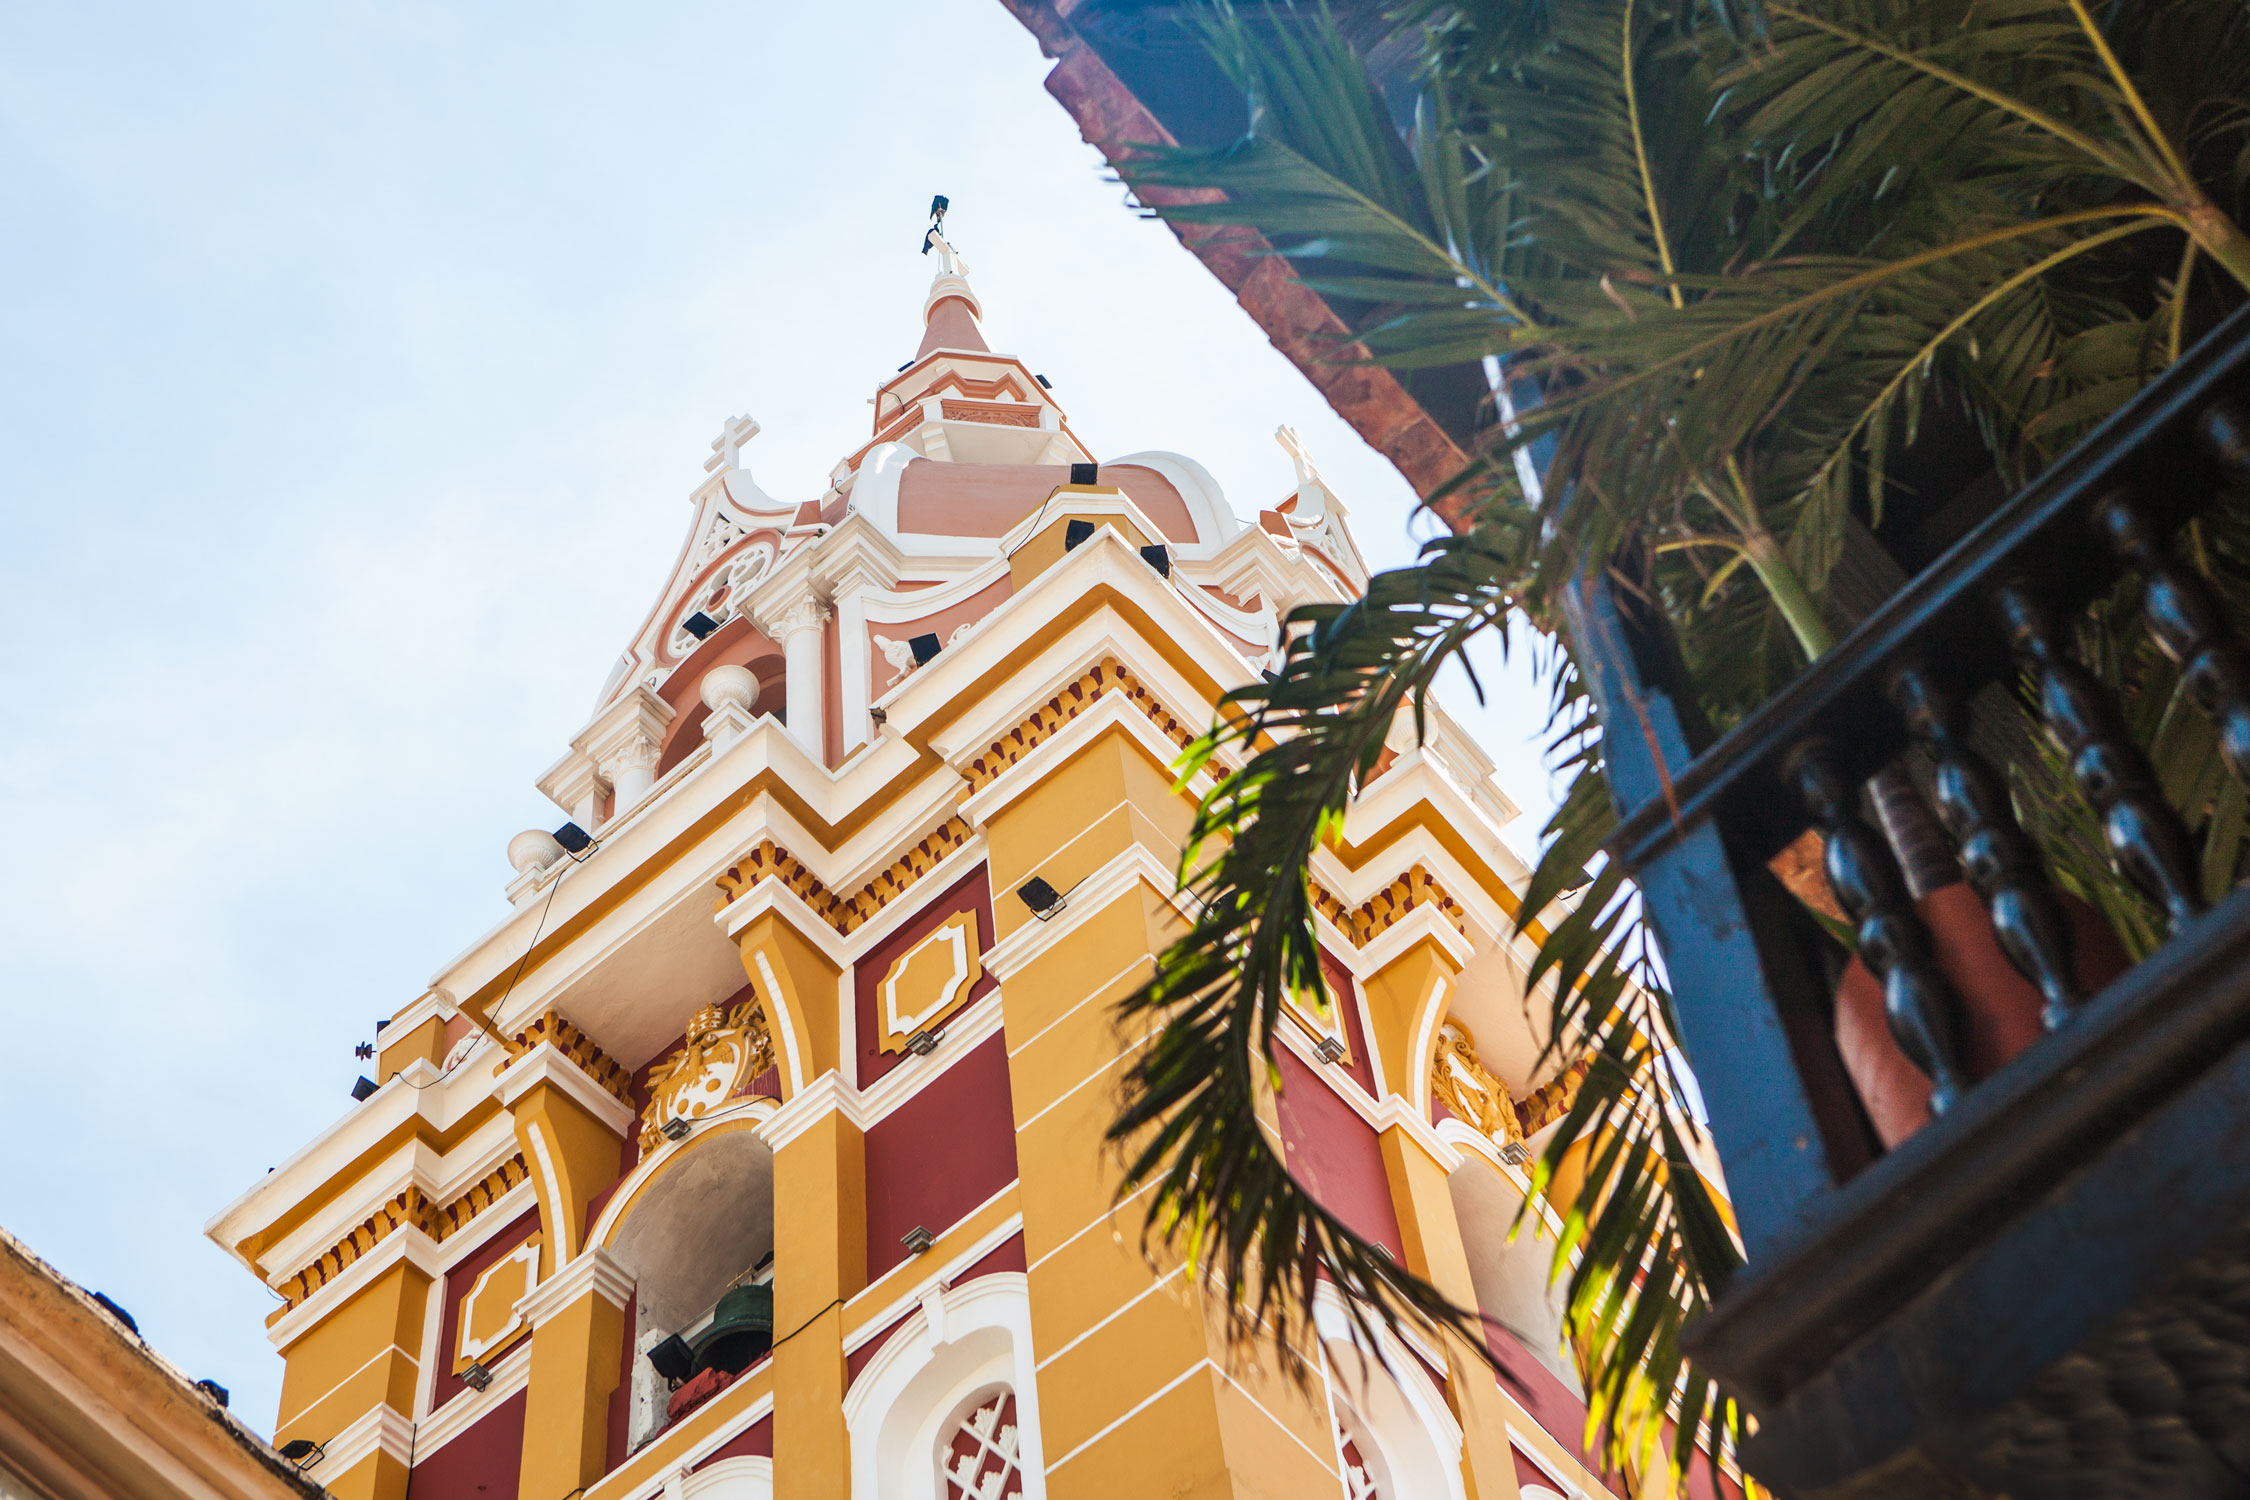 cartagena-colombia-wander-south-old-town-cathedral-tower.jpg